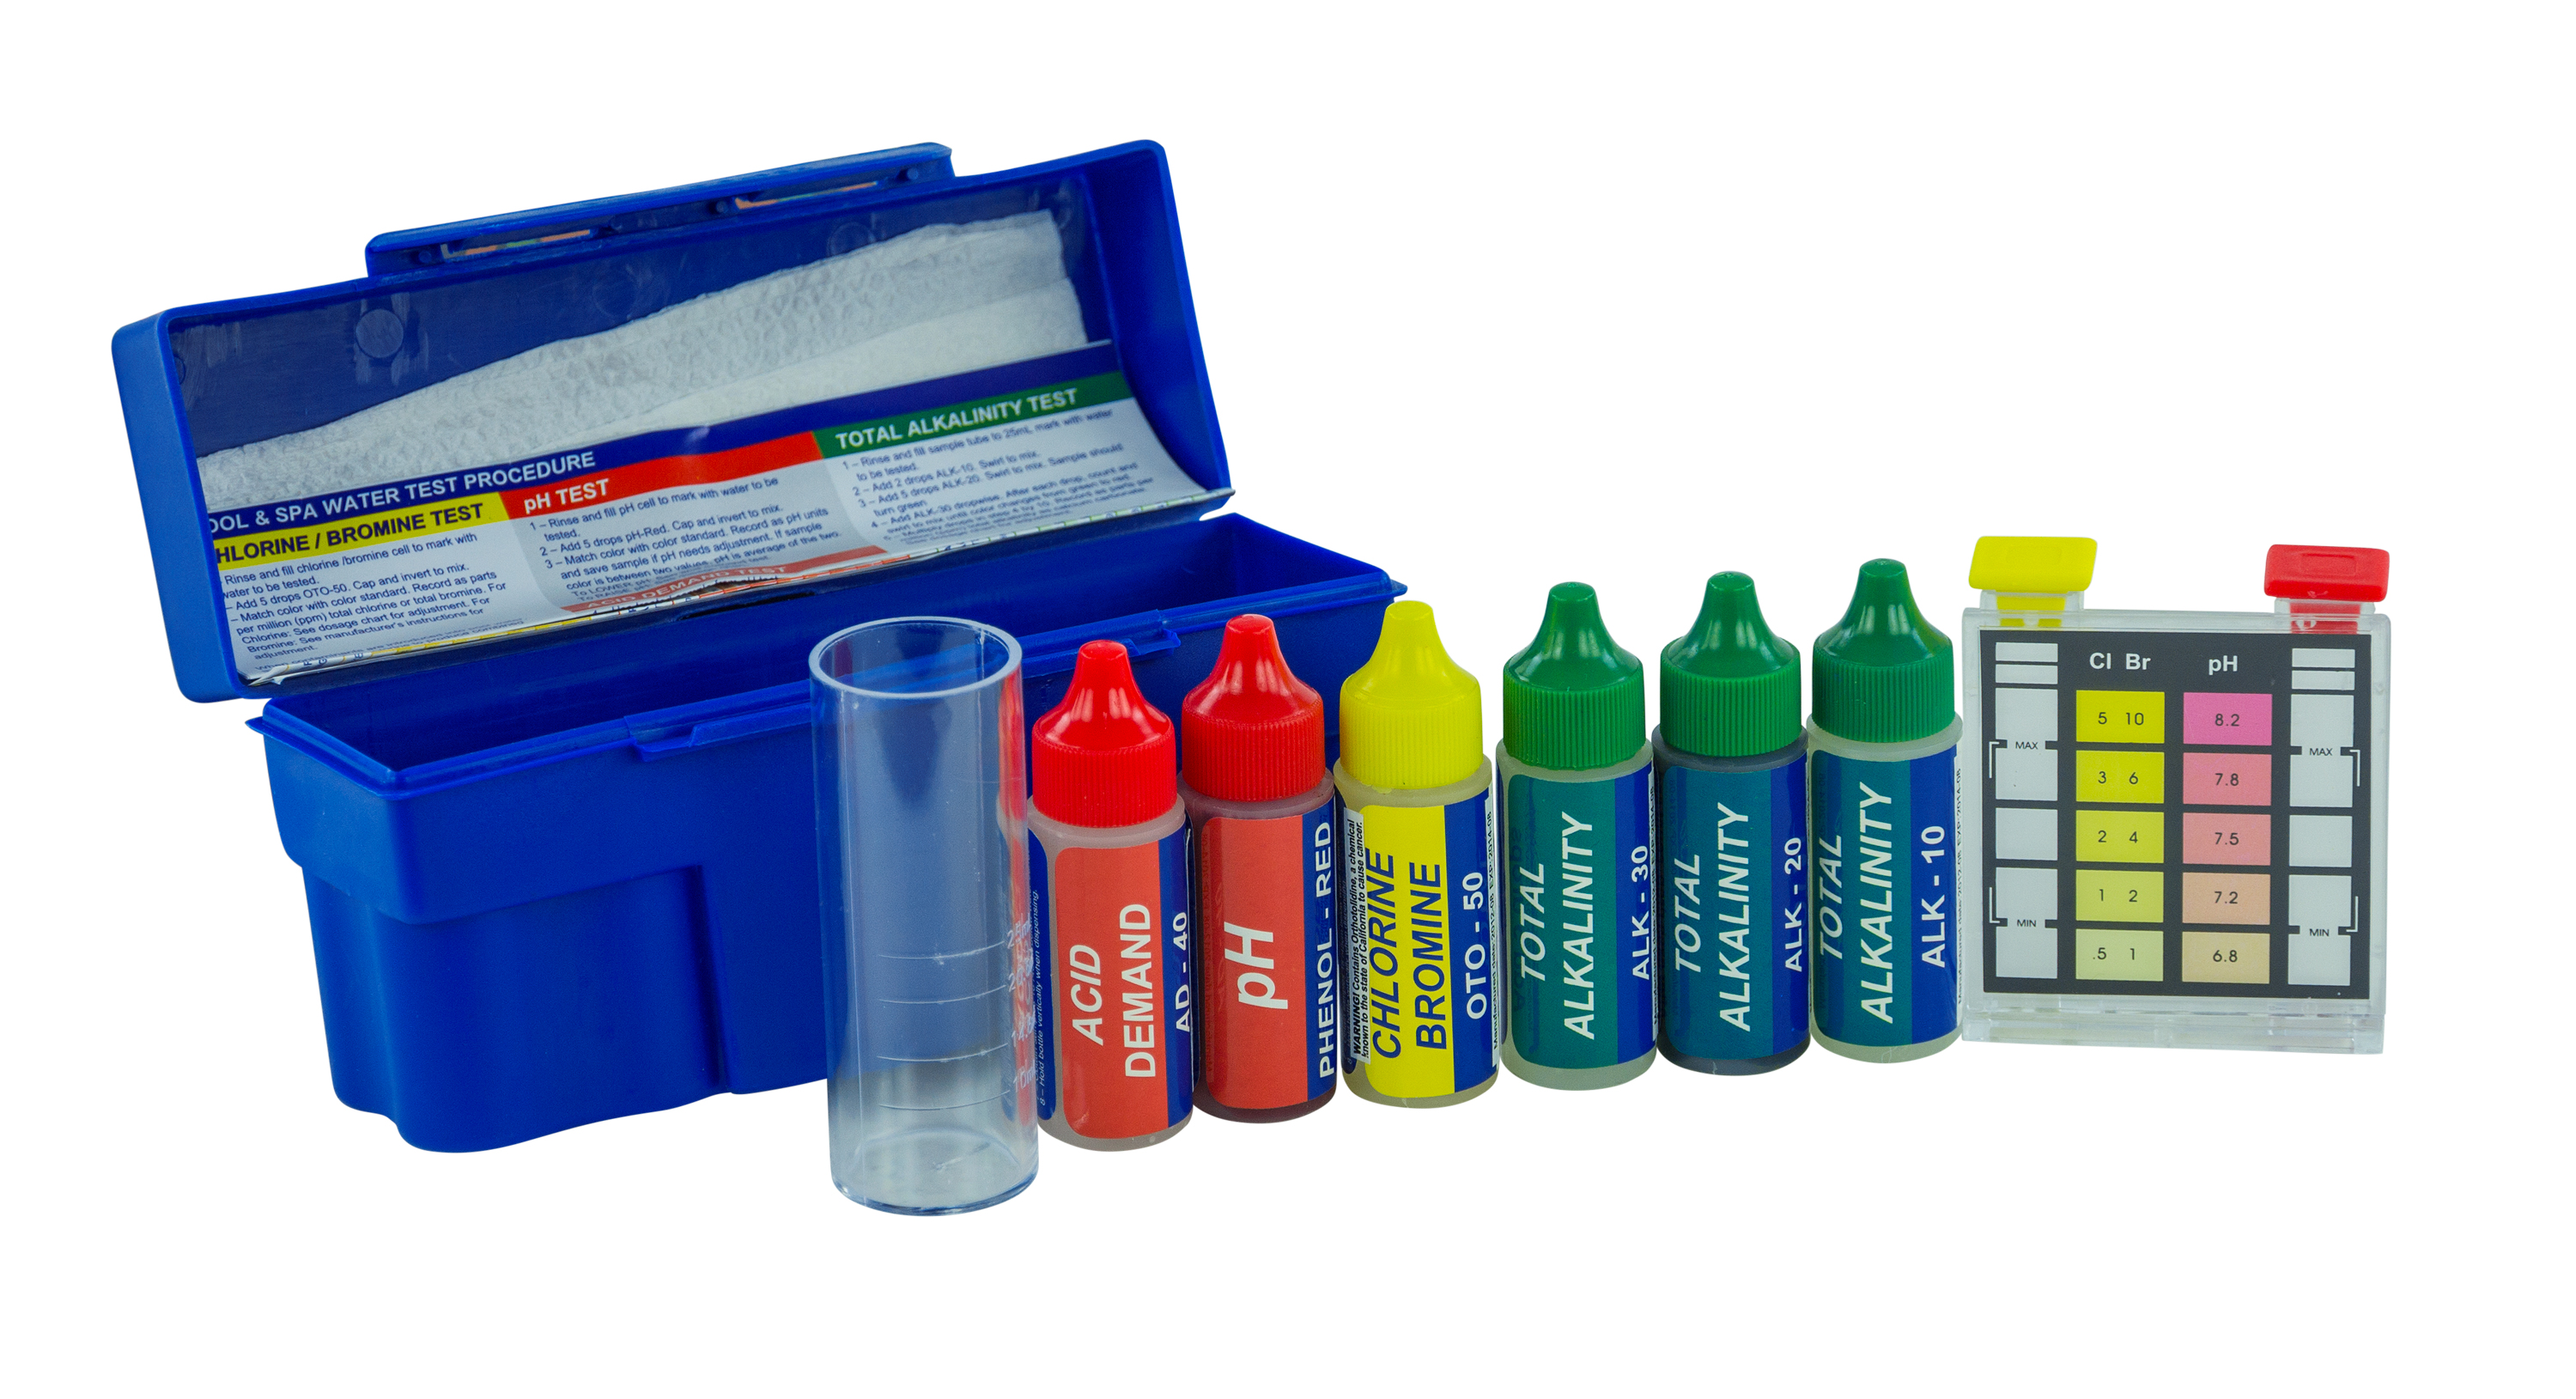 5 In 1 Reagent Test Kit Poolsupplies Com